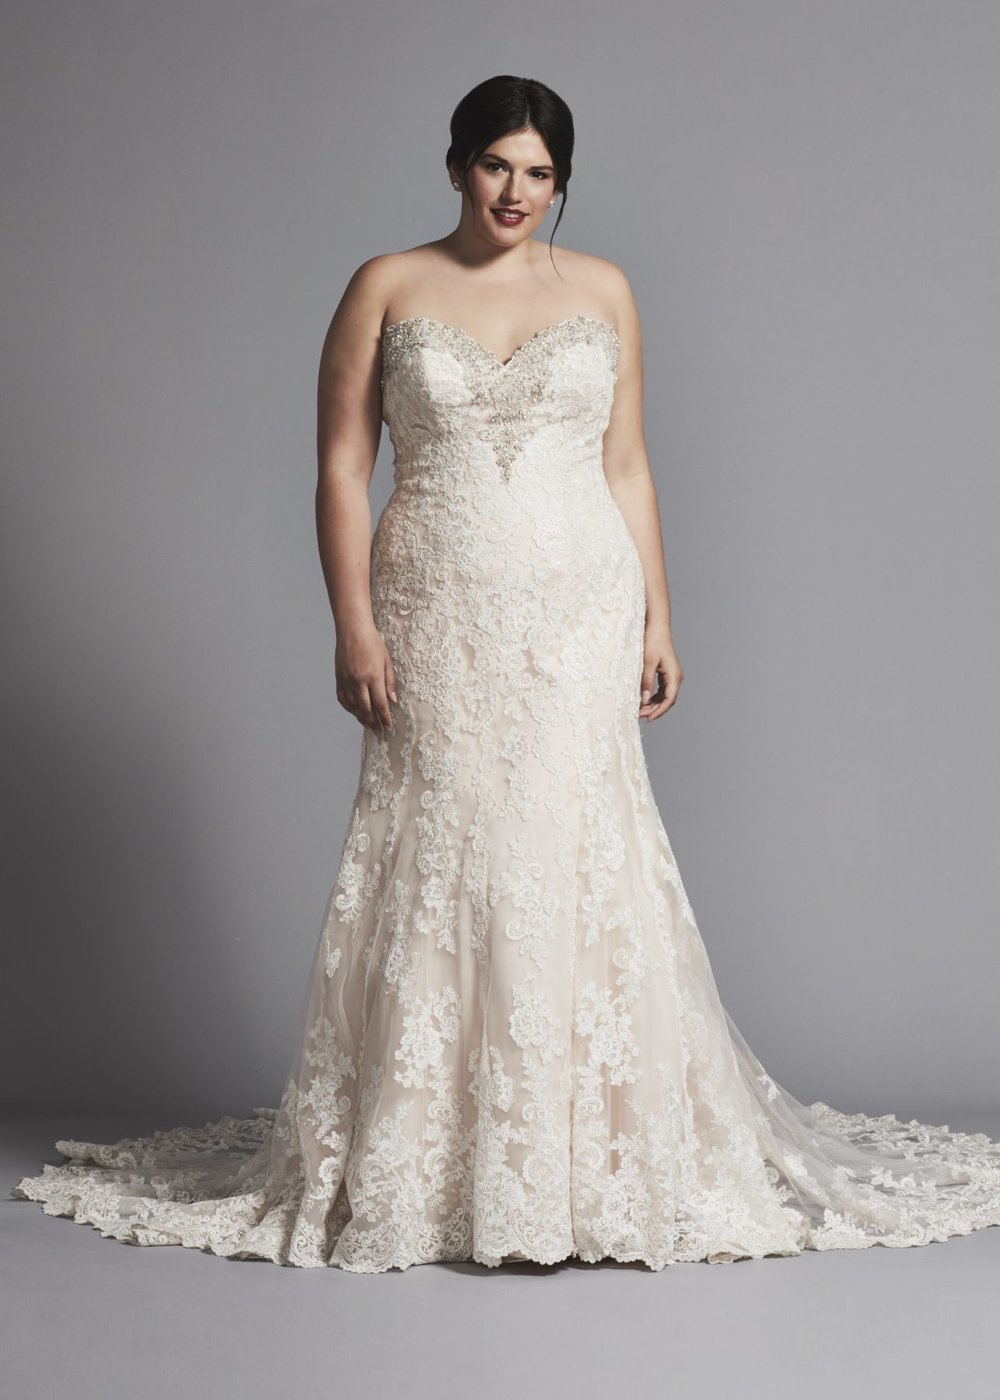 FIT AND FLARE LACE WEDDING DRESS WITH BEADING AT NECKLINE by DANIELLE CAPRESE